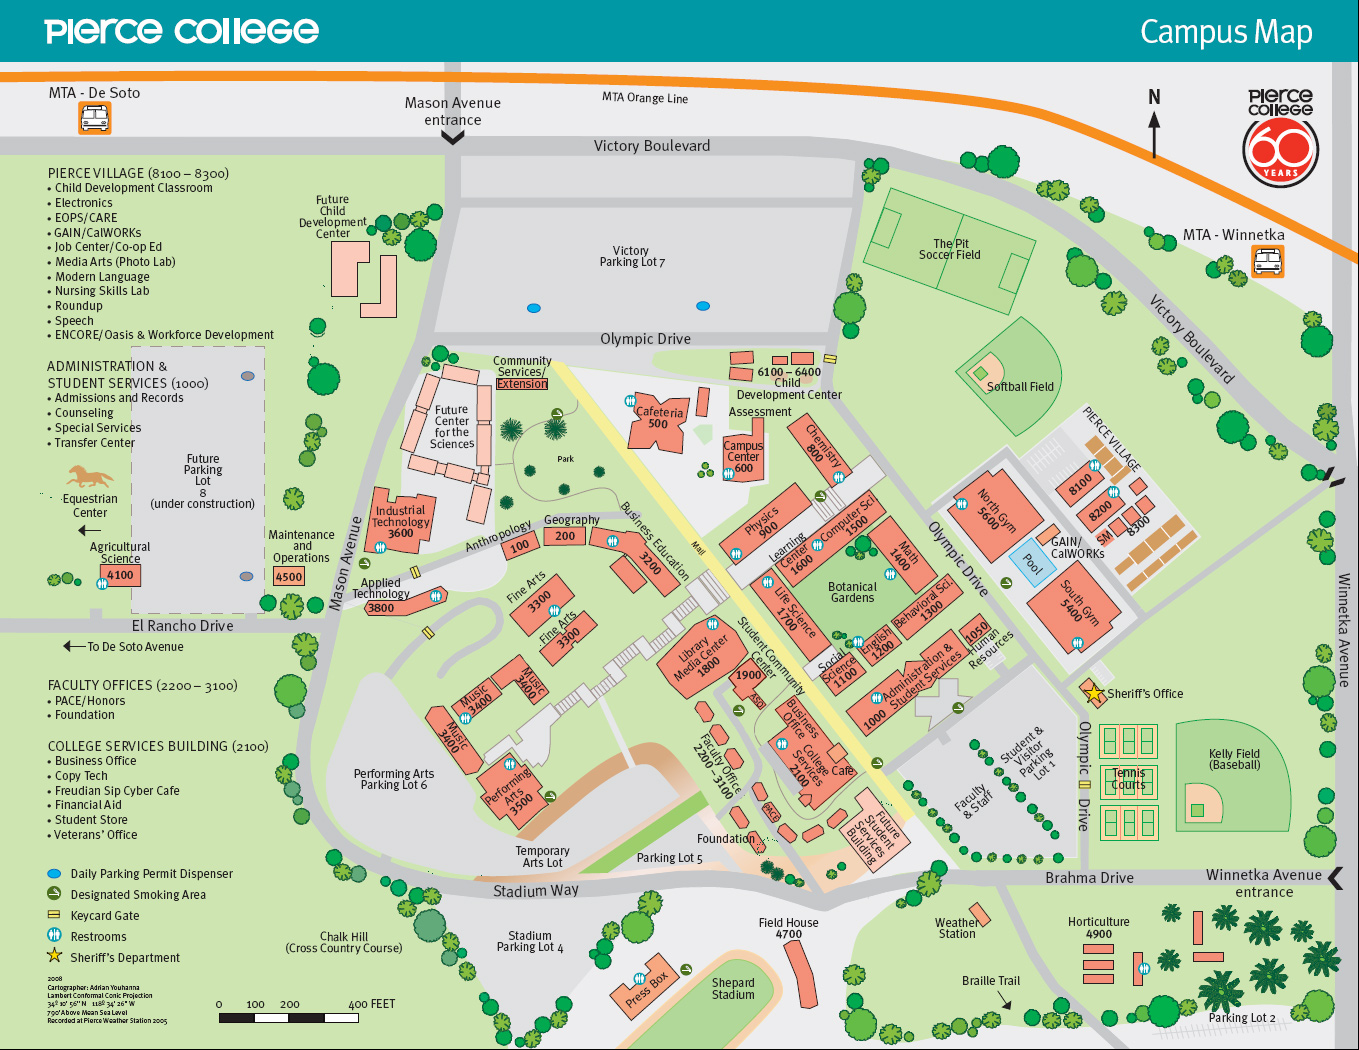 Northern Kentucky University Campus Map.Northern Kentucky University Campus Map